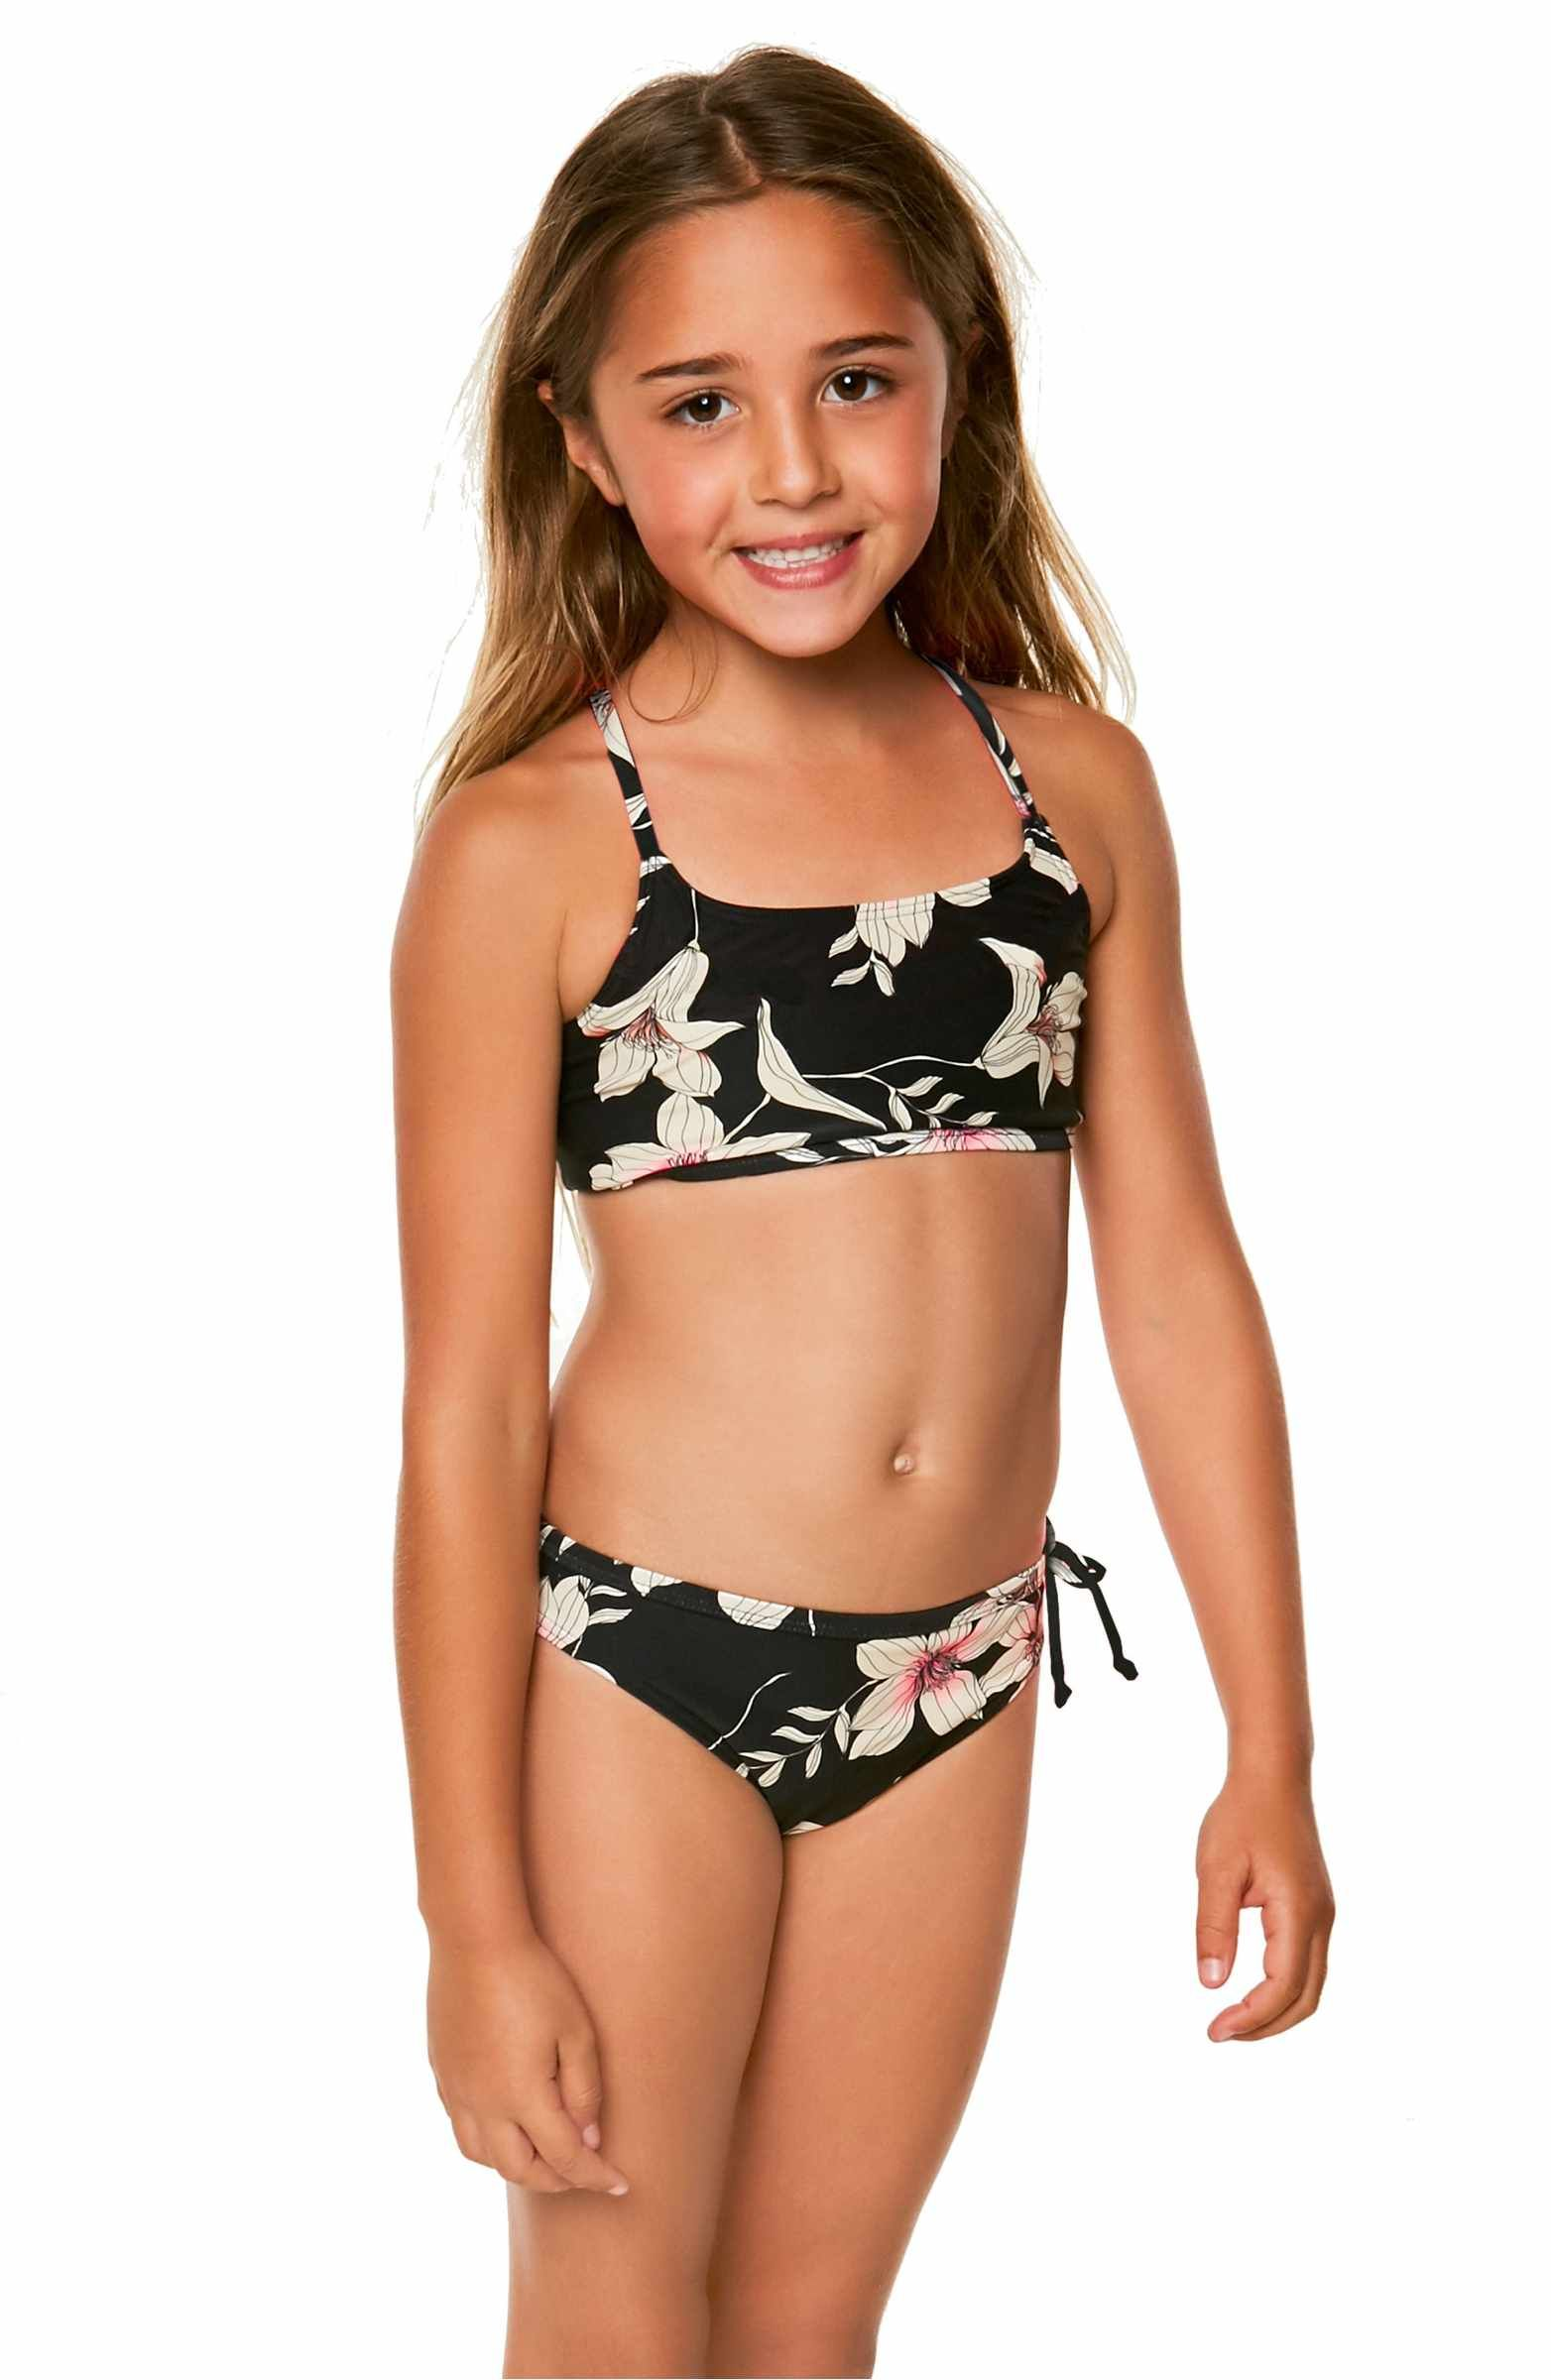 798085bdb4be Main Image - O'Neill Albany Two-Piece Swimsuit (Toddler Girls & Little  Girls)